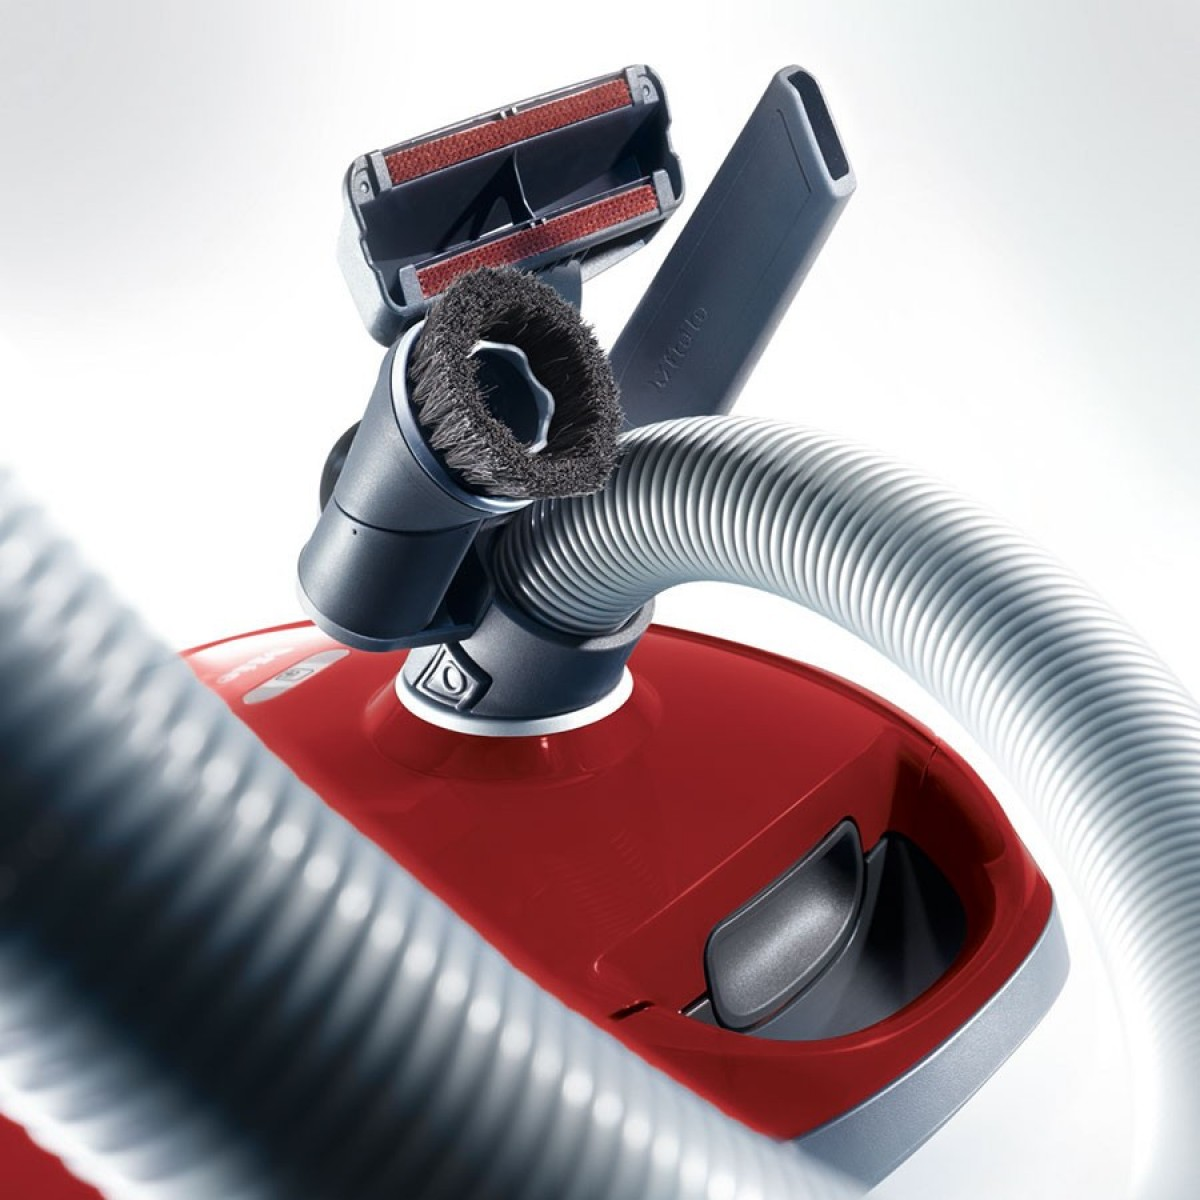 miele compact c2 vacuum cleaner review